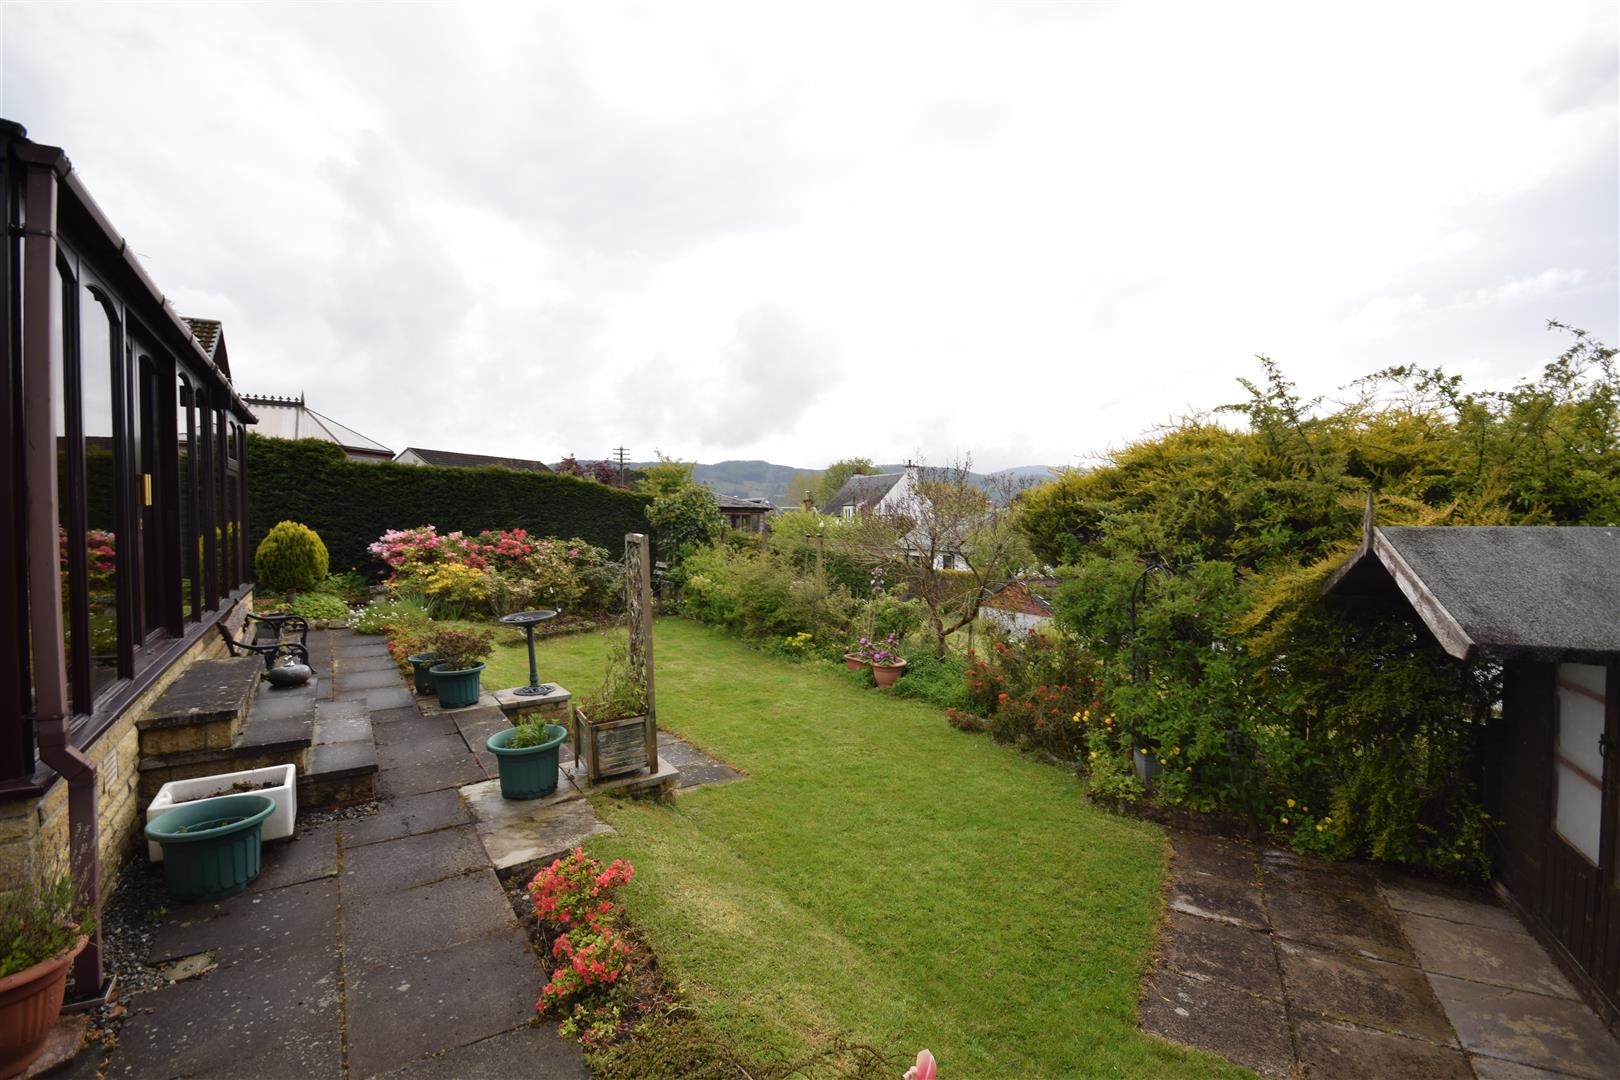 44, Knockard Place, PITLOCHRY, Perthshire, PH16 5JF, UK